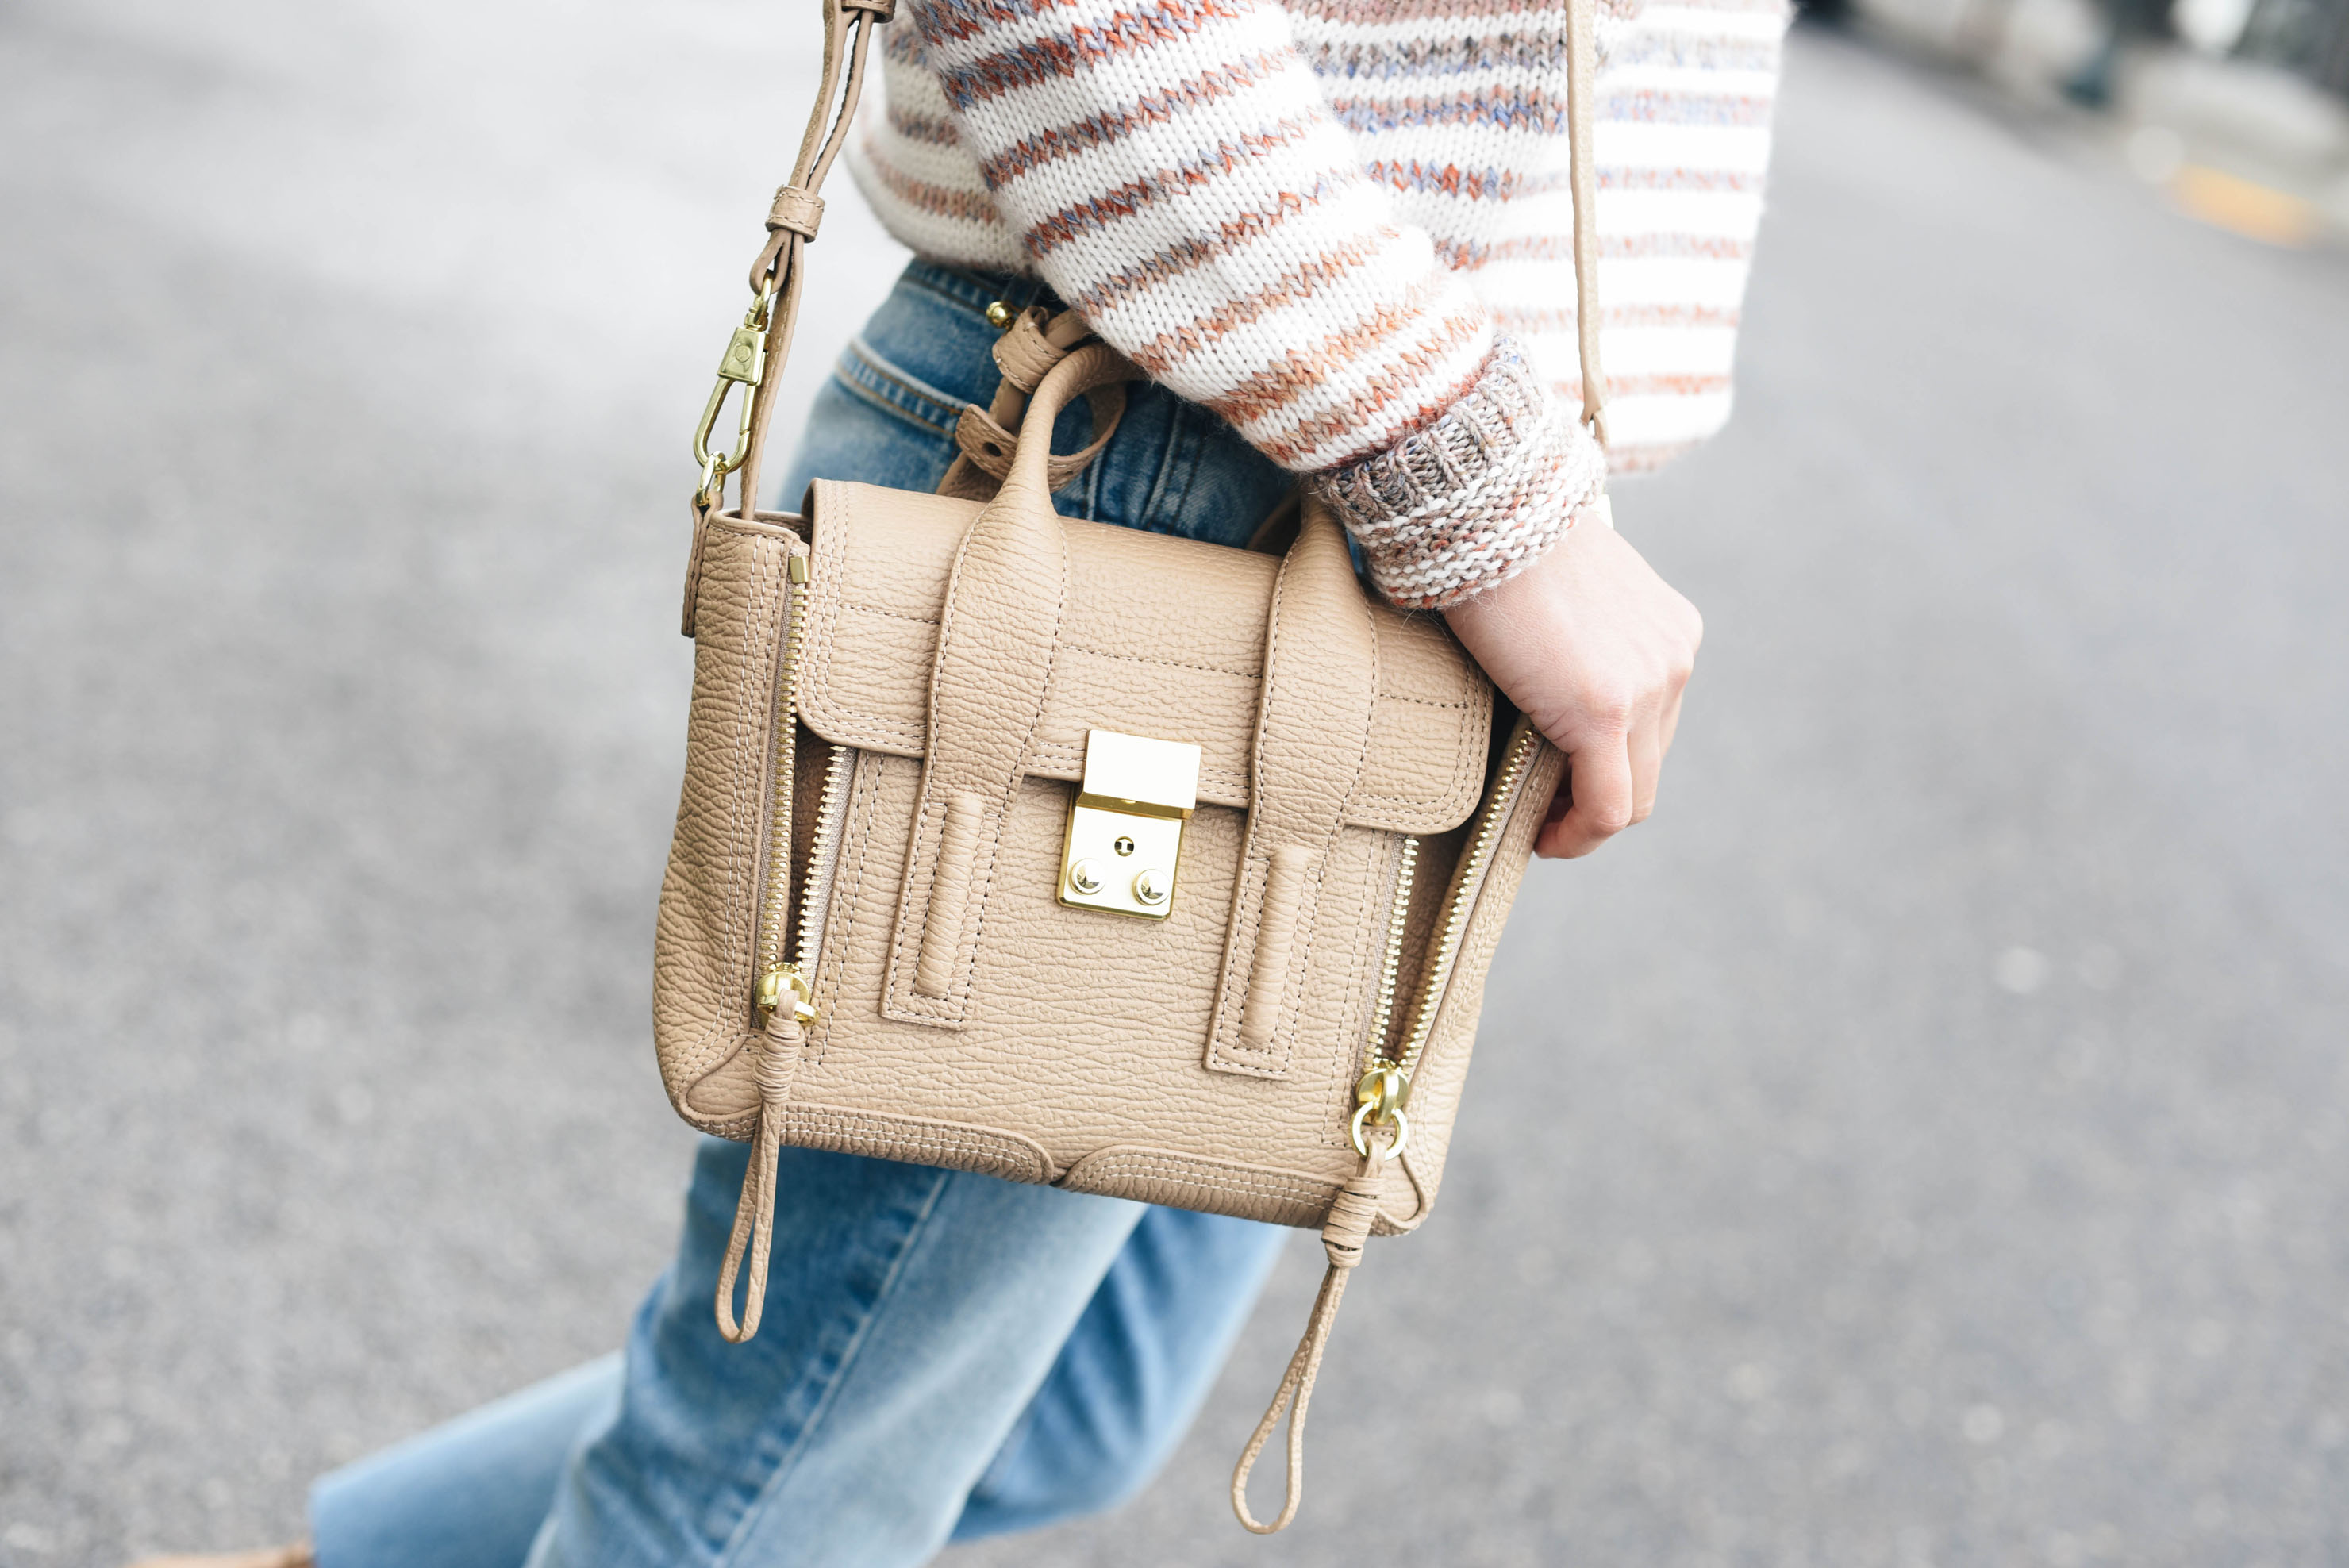 Crystalin Marie wearing 3.1 Phillip Lim Mini Pashli Leather Satchel in cashew